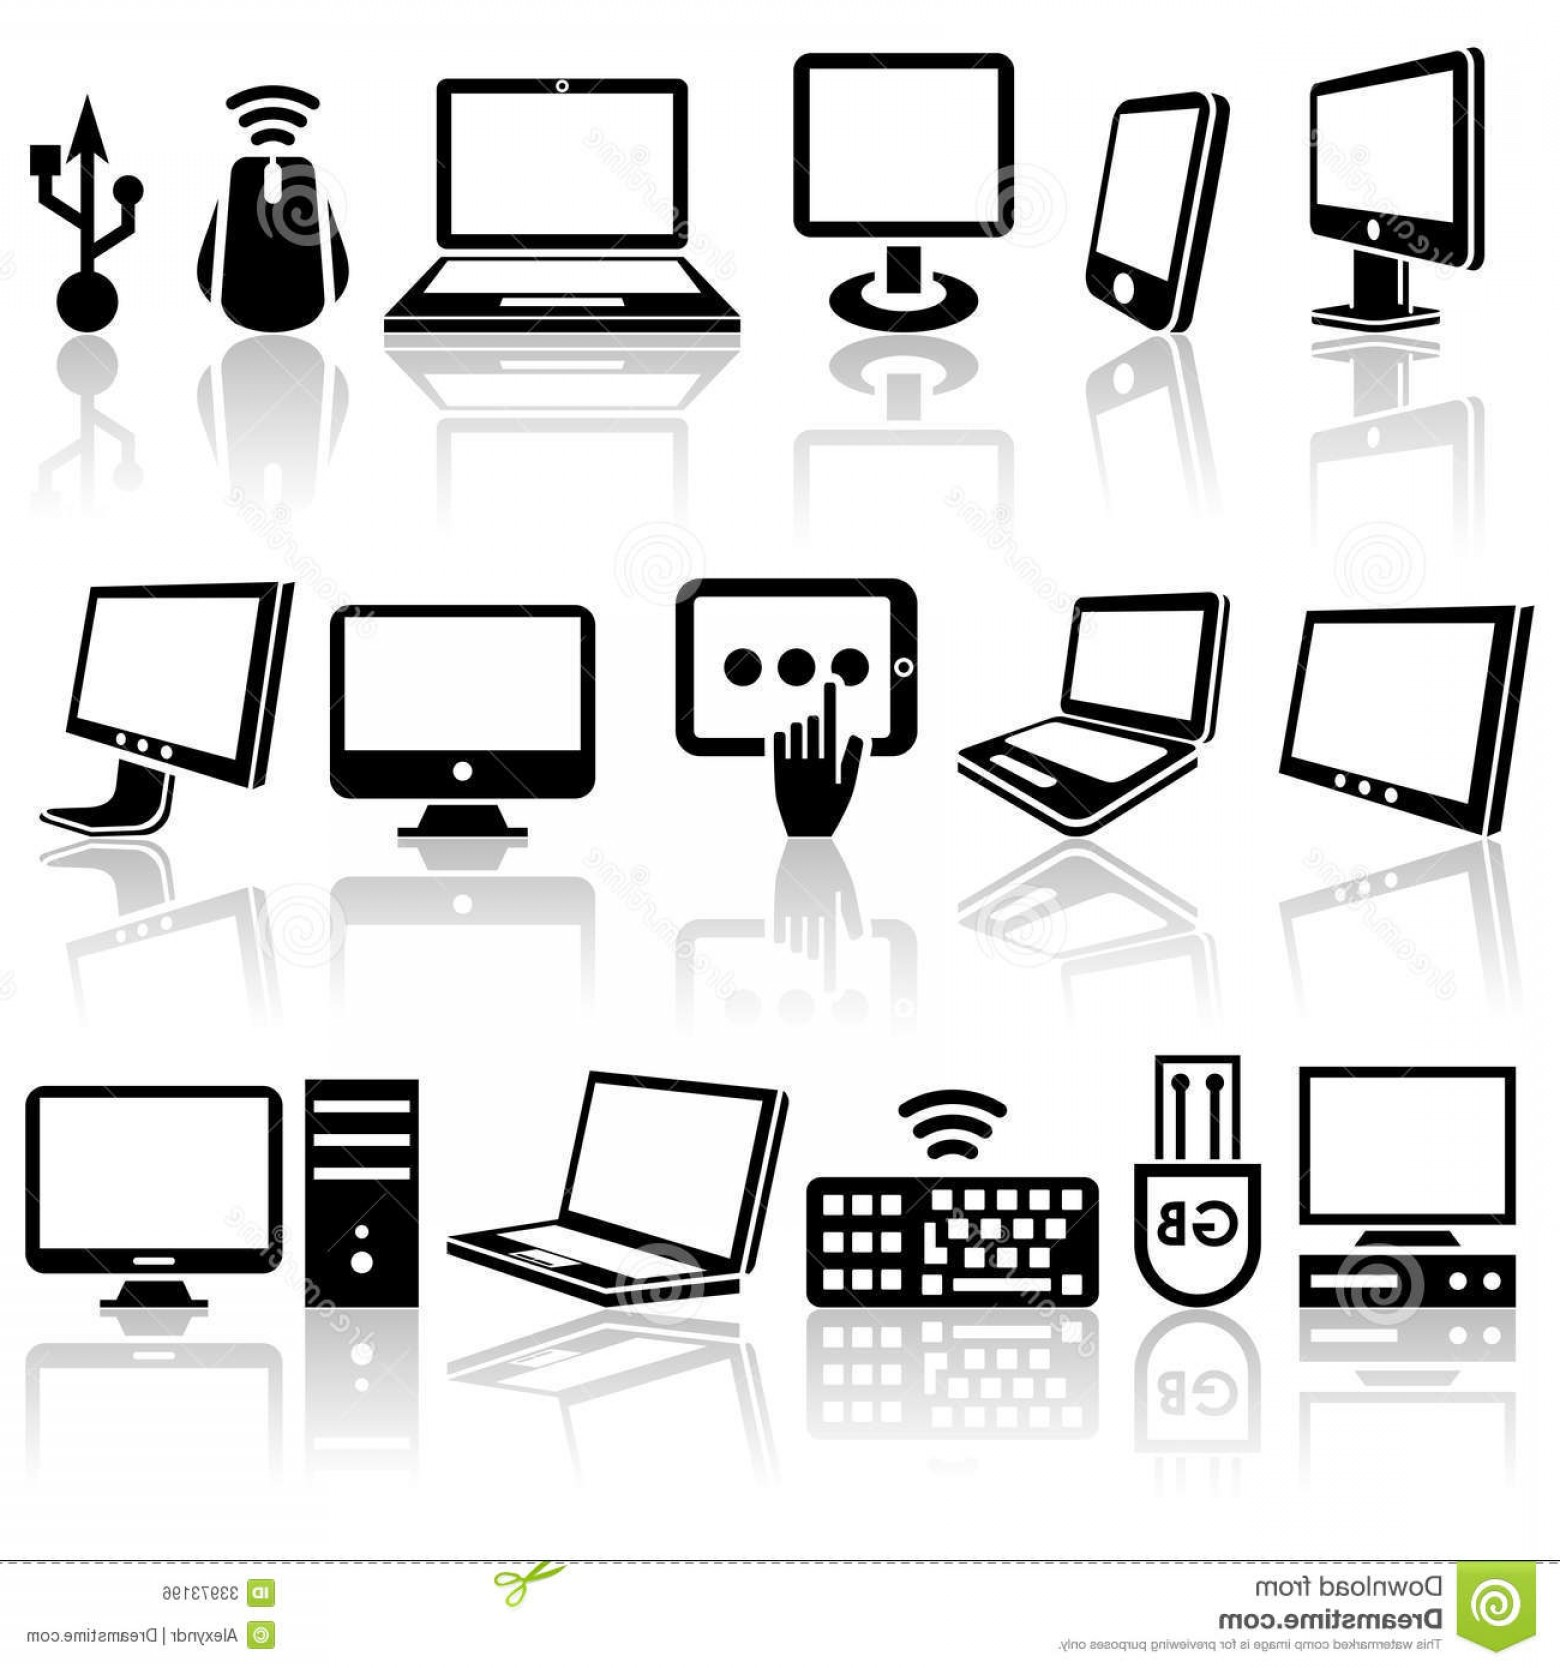 Computer Vector Icon Flat: Royalty Free Stock Image Computer Vector Icons Set Eps File Available Image